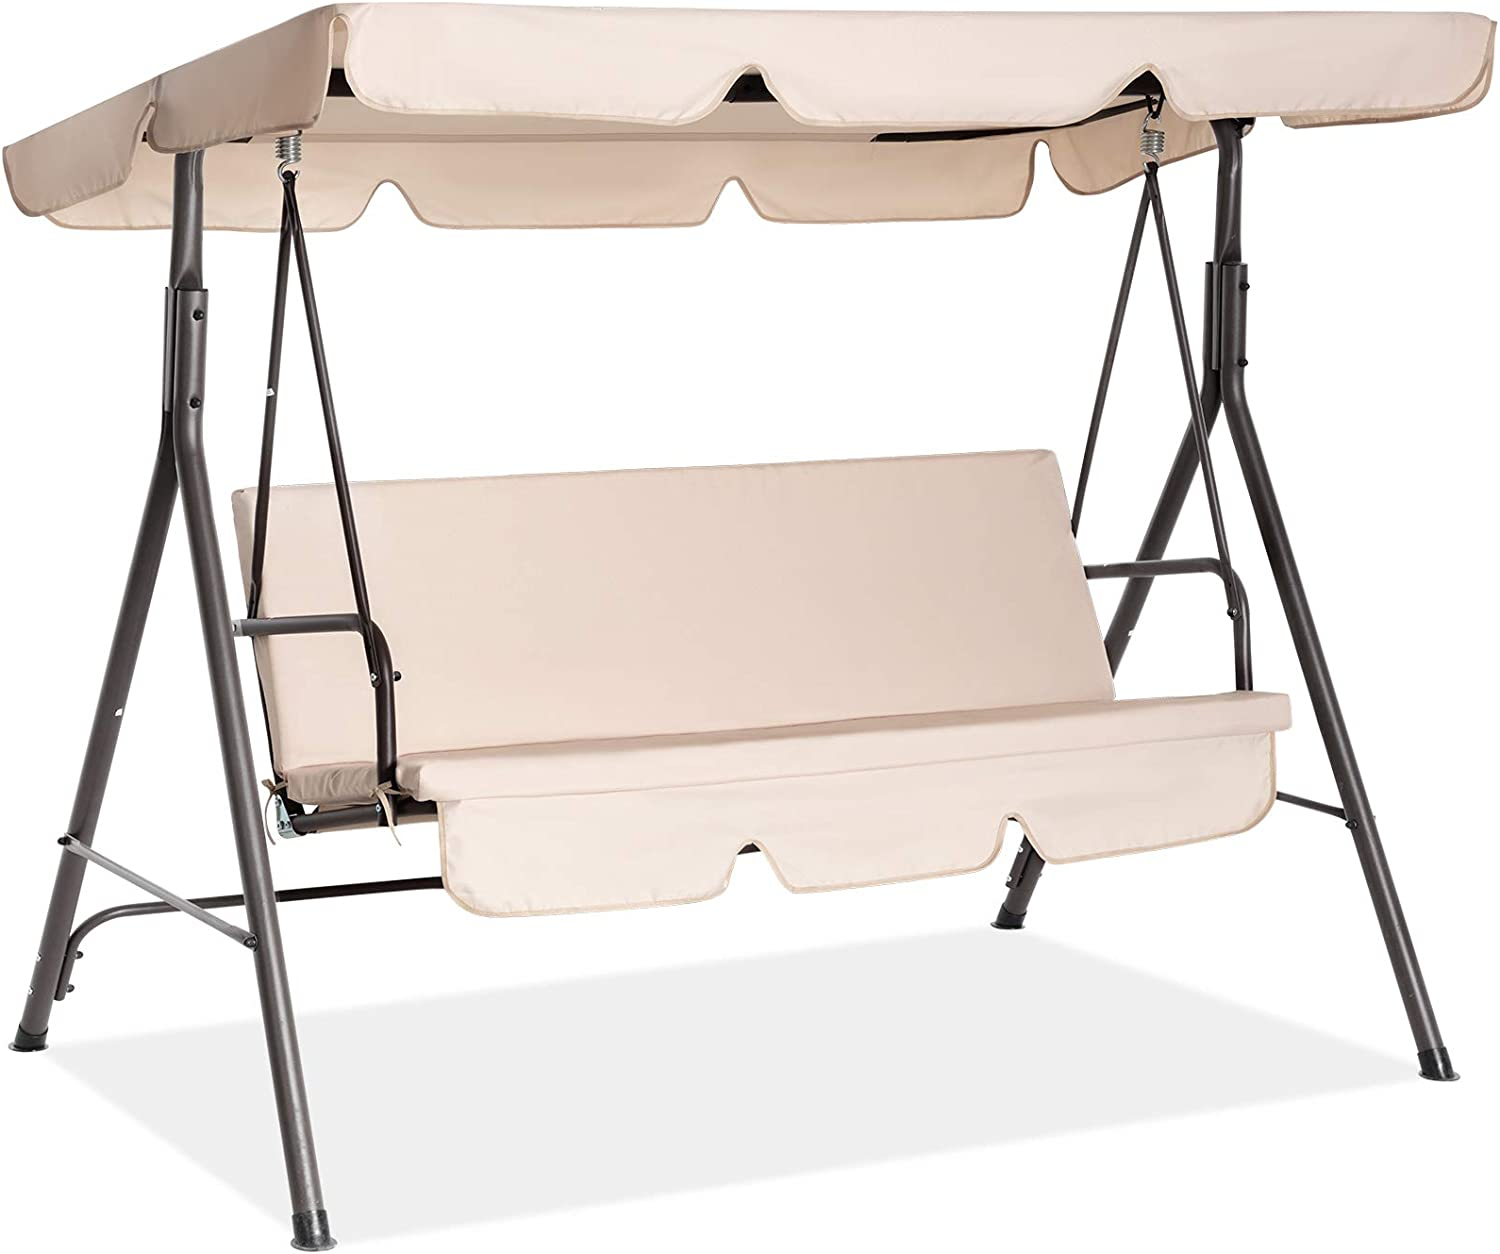 Fundouns 2-Person Patio Porch Swing Chair, Patio Swing with Canopy and Removable Cushions - Beige